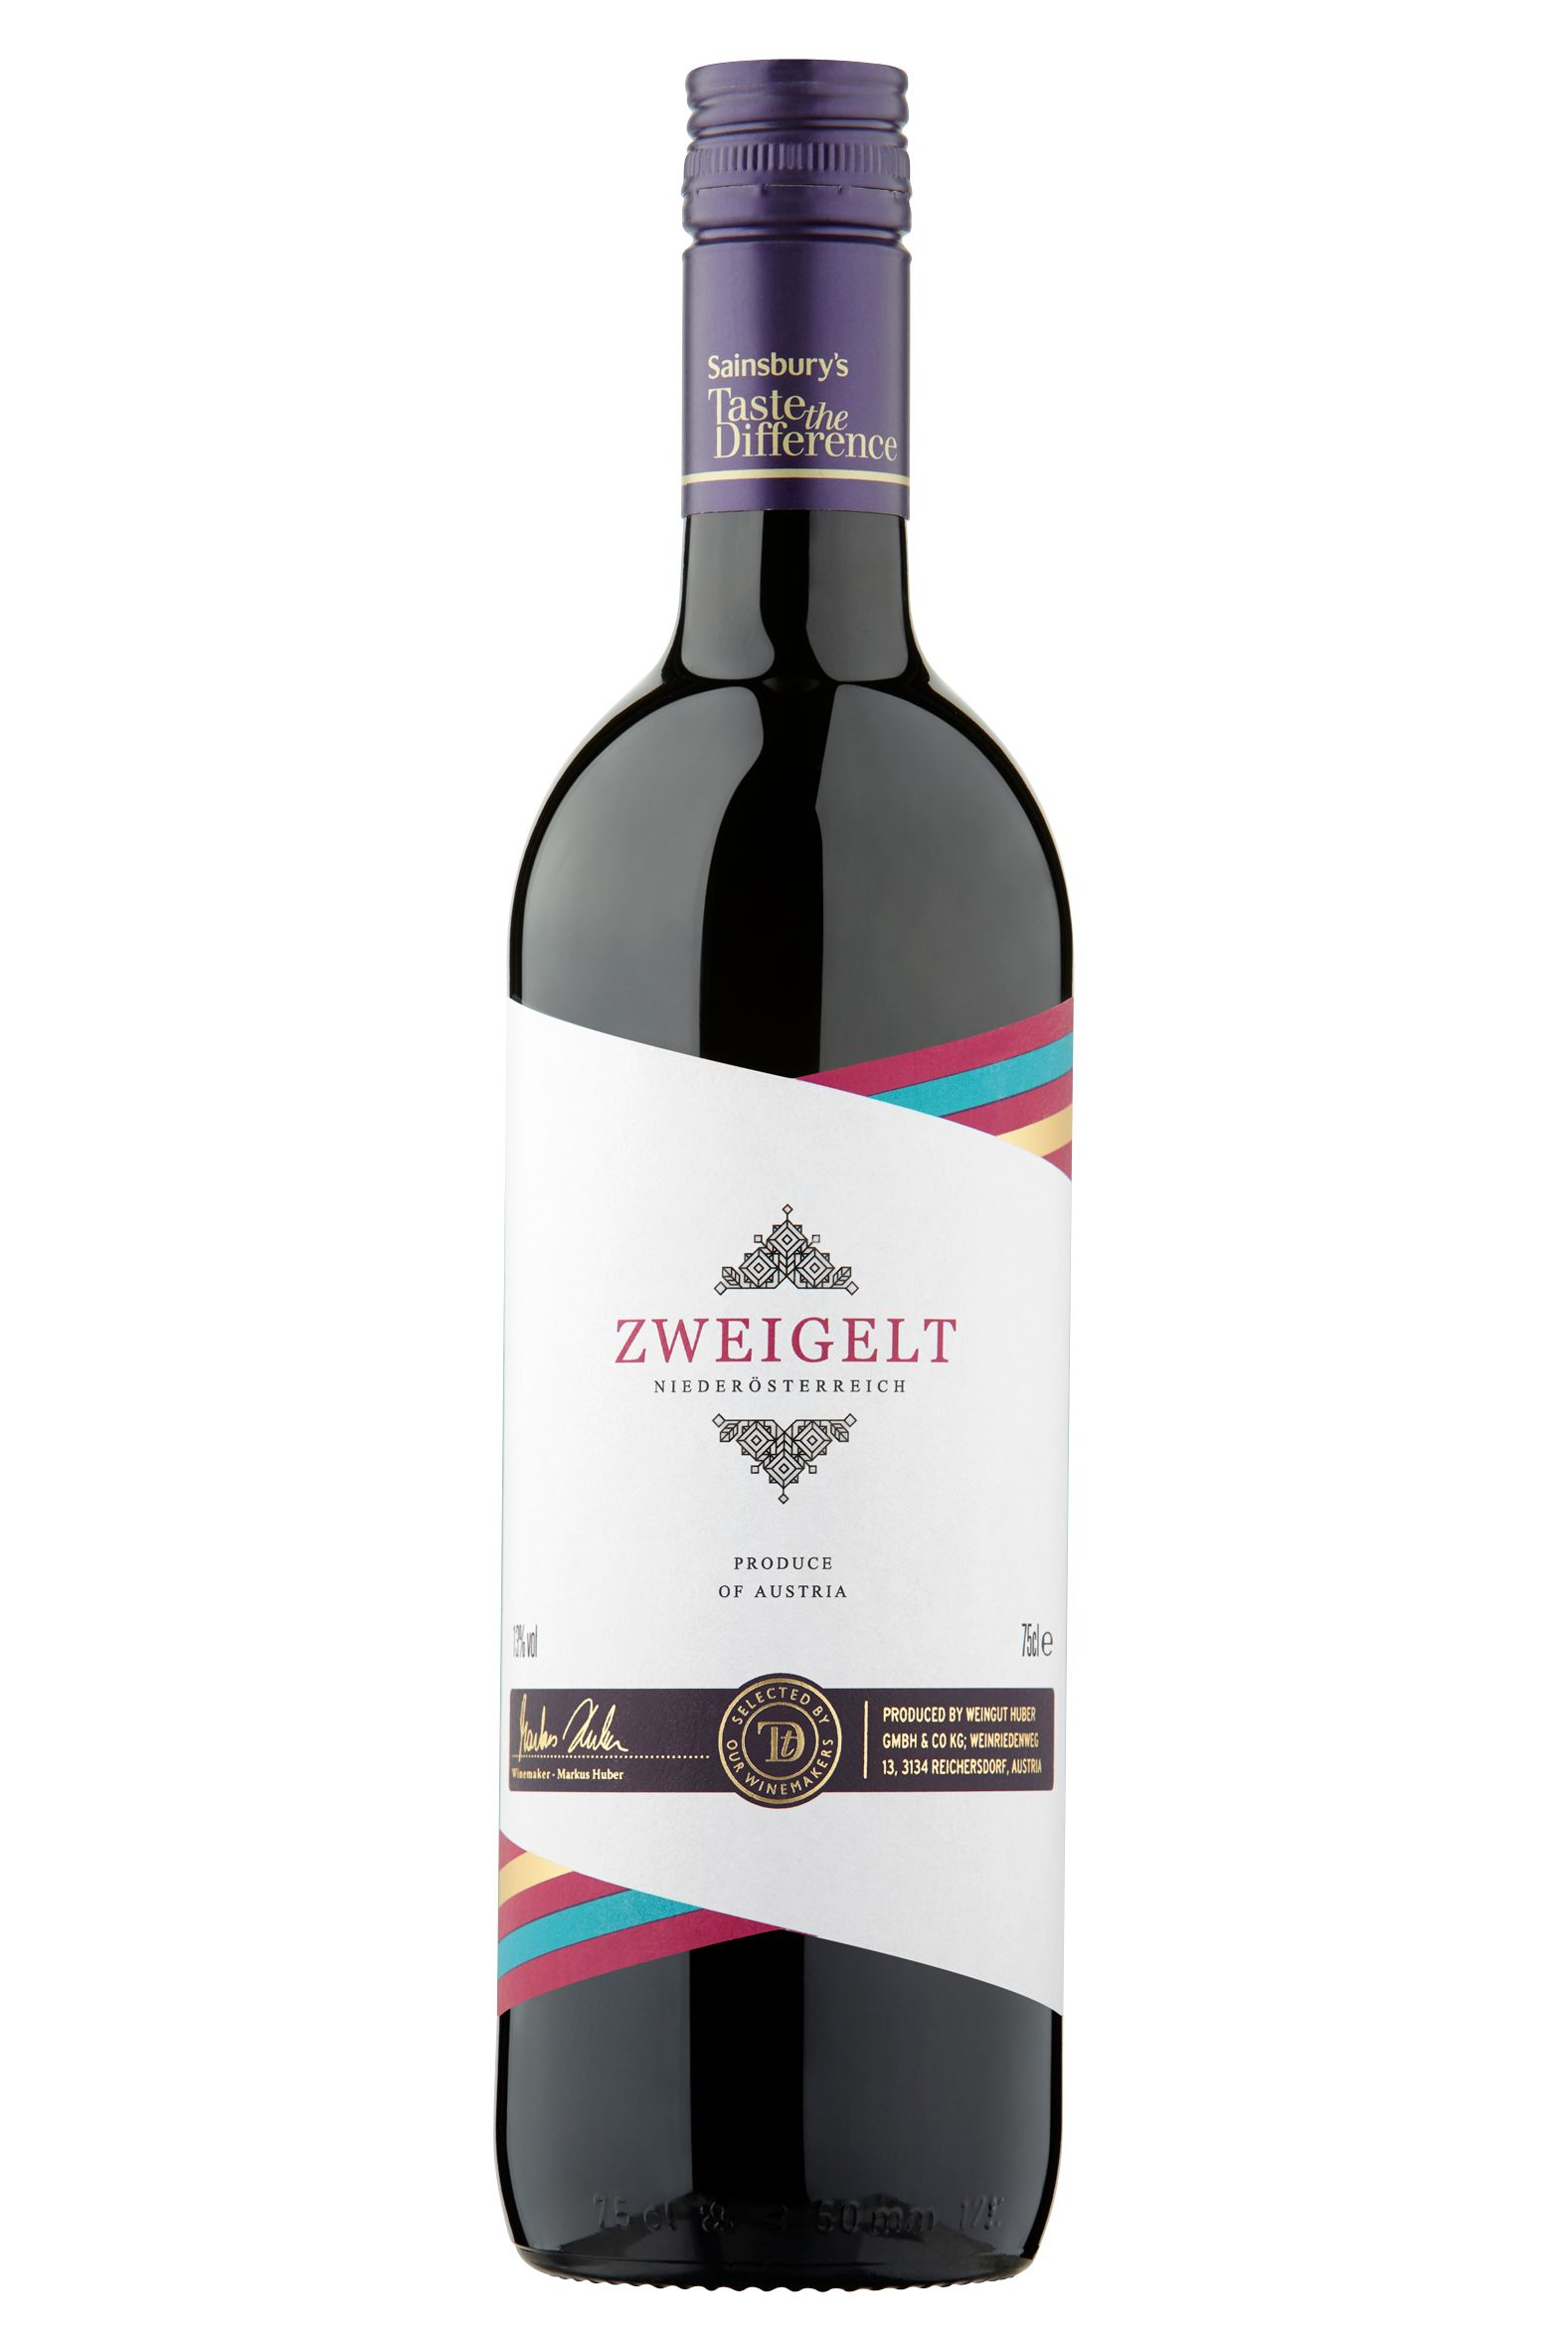 Image result for sainsbury's zweigelt wine